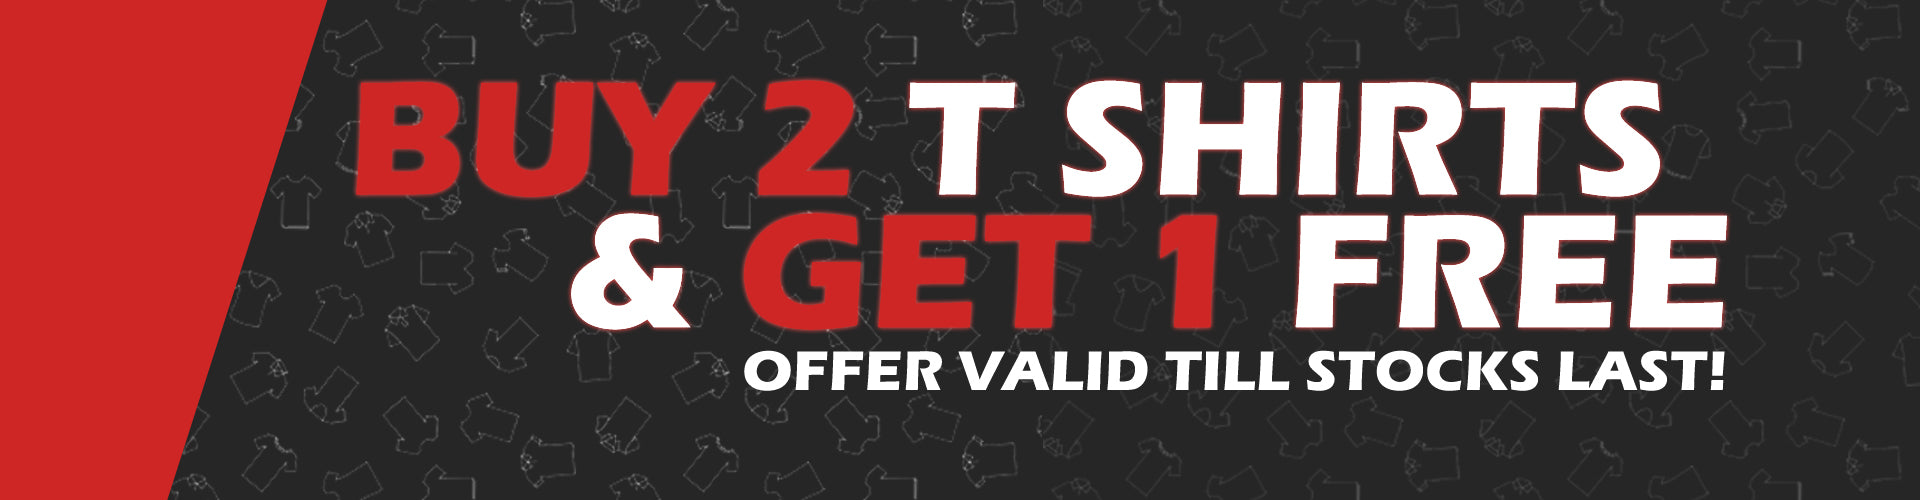 Buy 2 T shirt Get 1 free | Online India T shirt offer